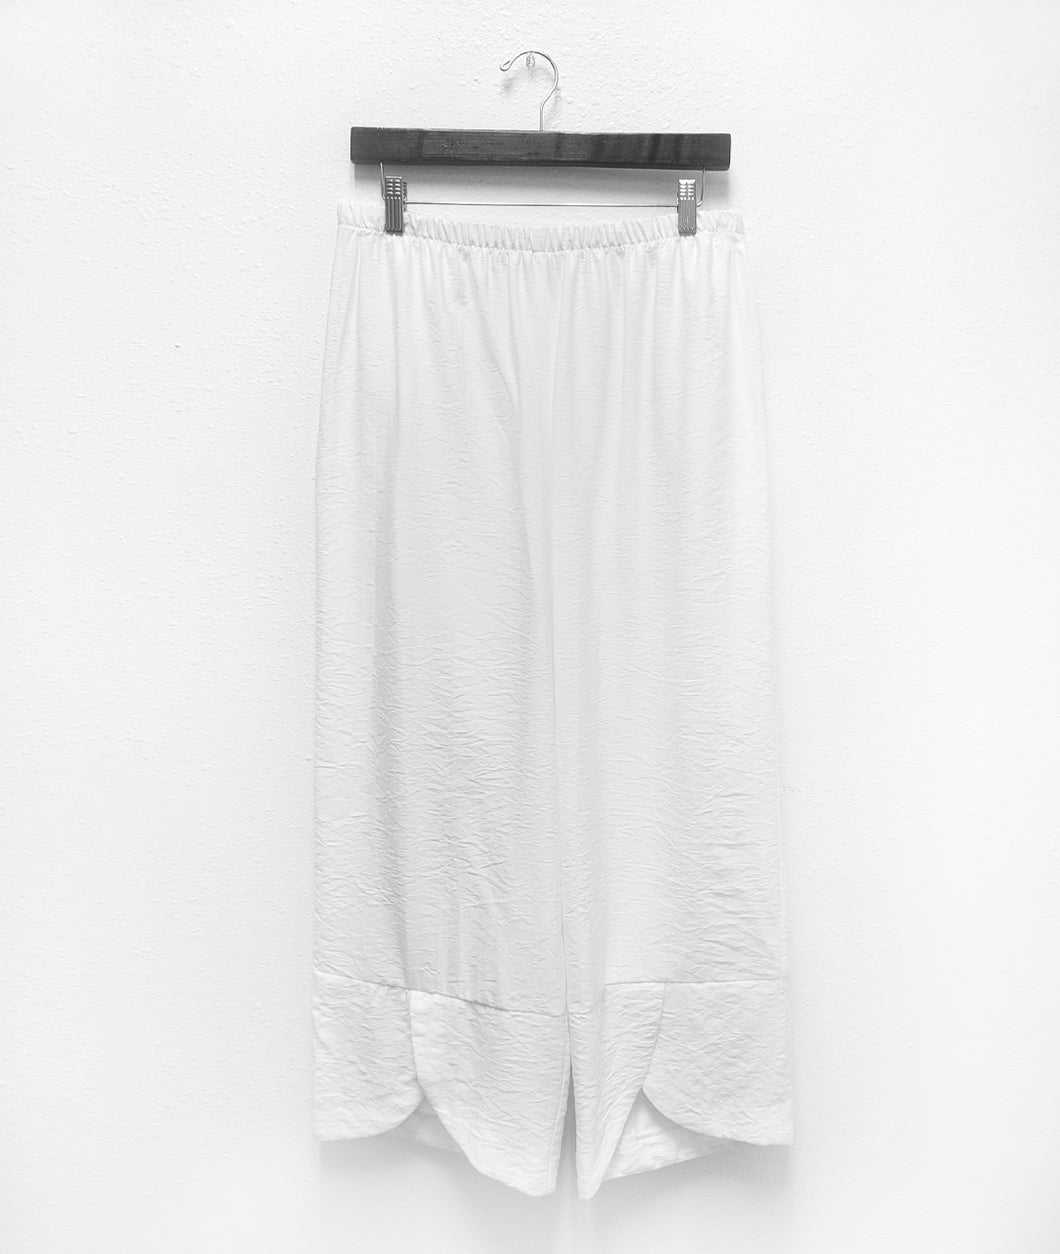 a pair of white pants hanging from a black hanger. The pants have a full elastic waistband and a wide cuff at the pant hem with a tulip shaped overlay in the front center of each leg